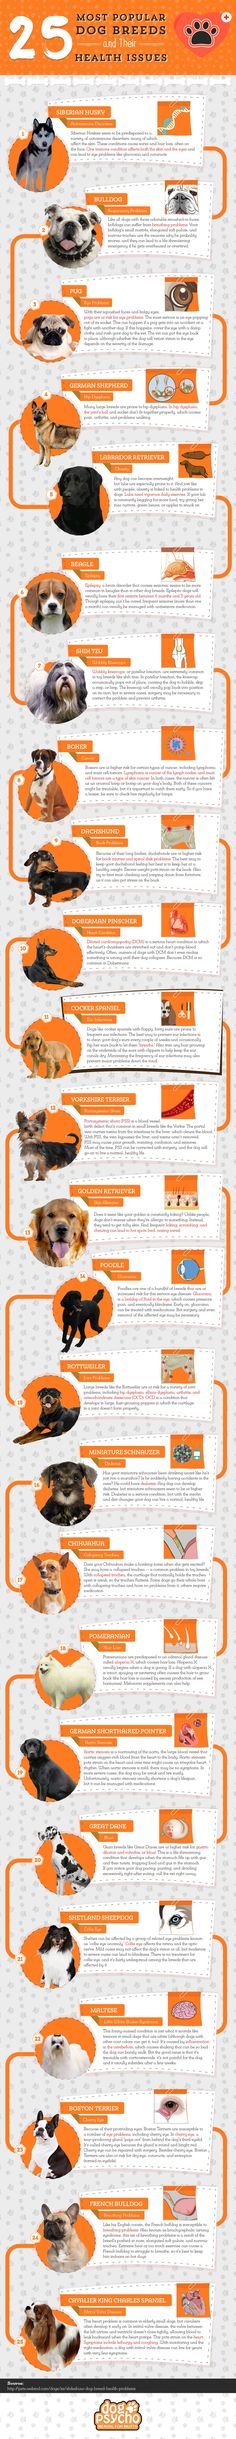 Common Health Problems in Six Popular Dog Breeds [Infographic]